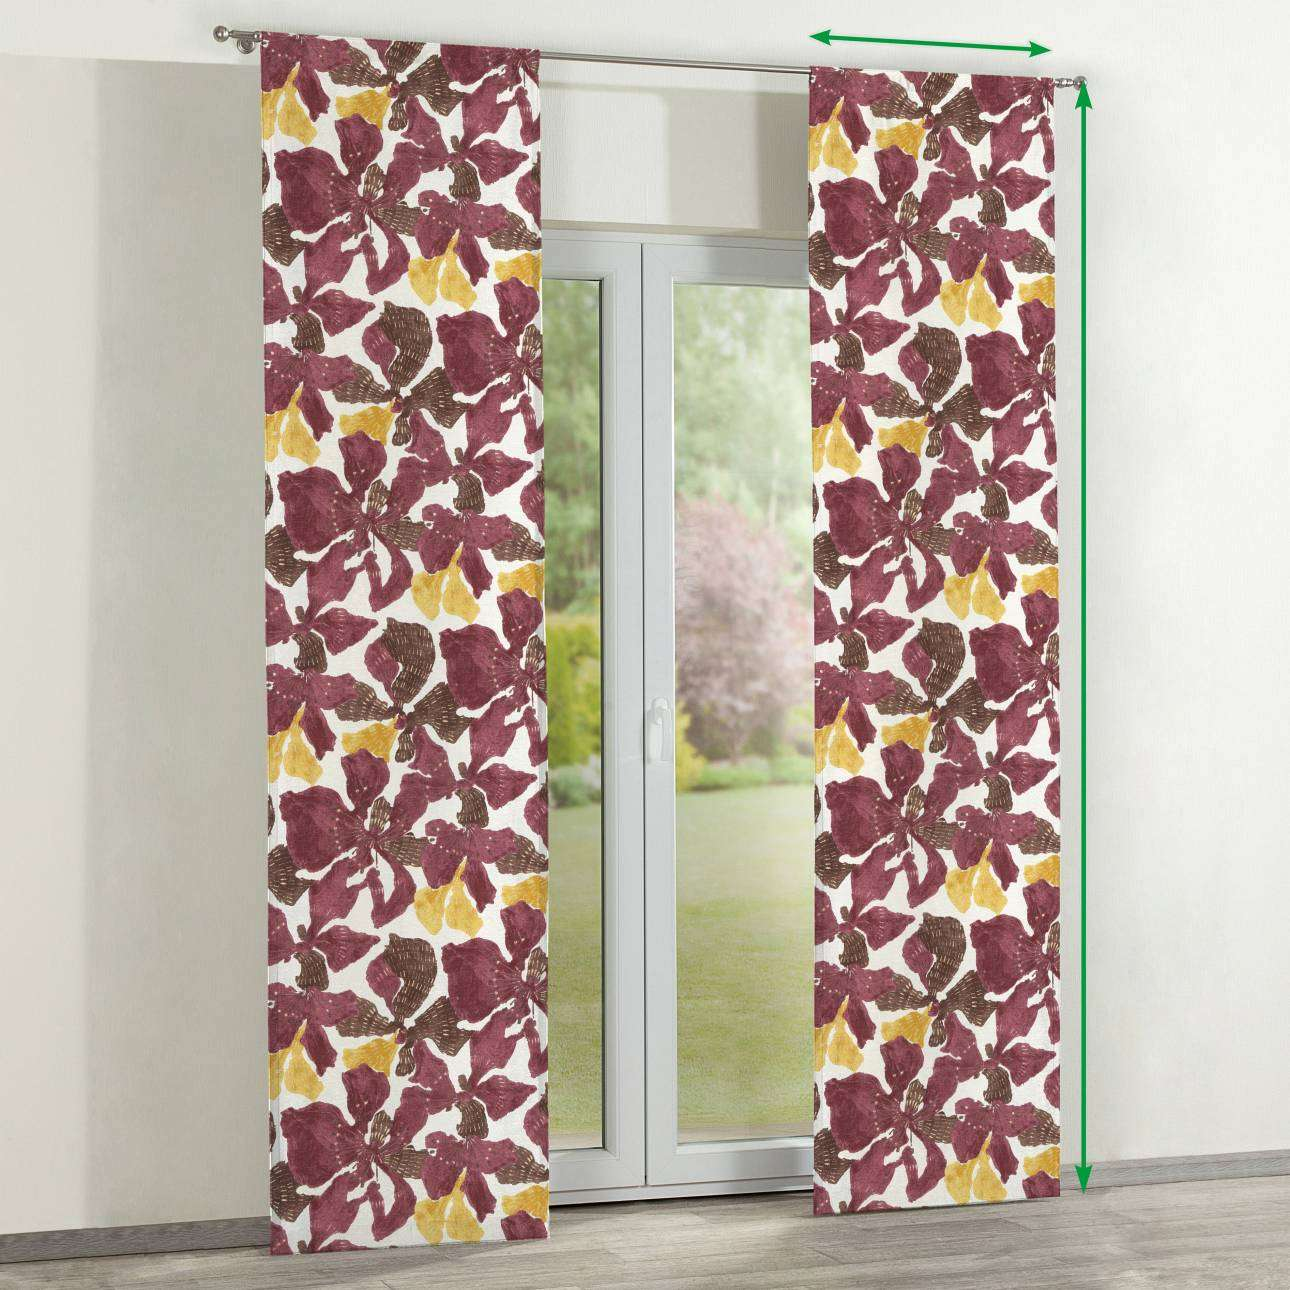 Slot panel curtains – Set of 2 in collection SALE, fabric: 141-09